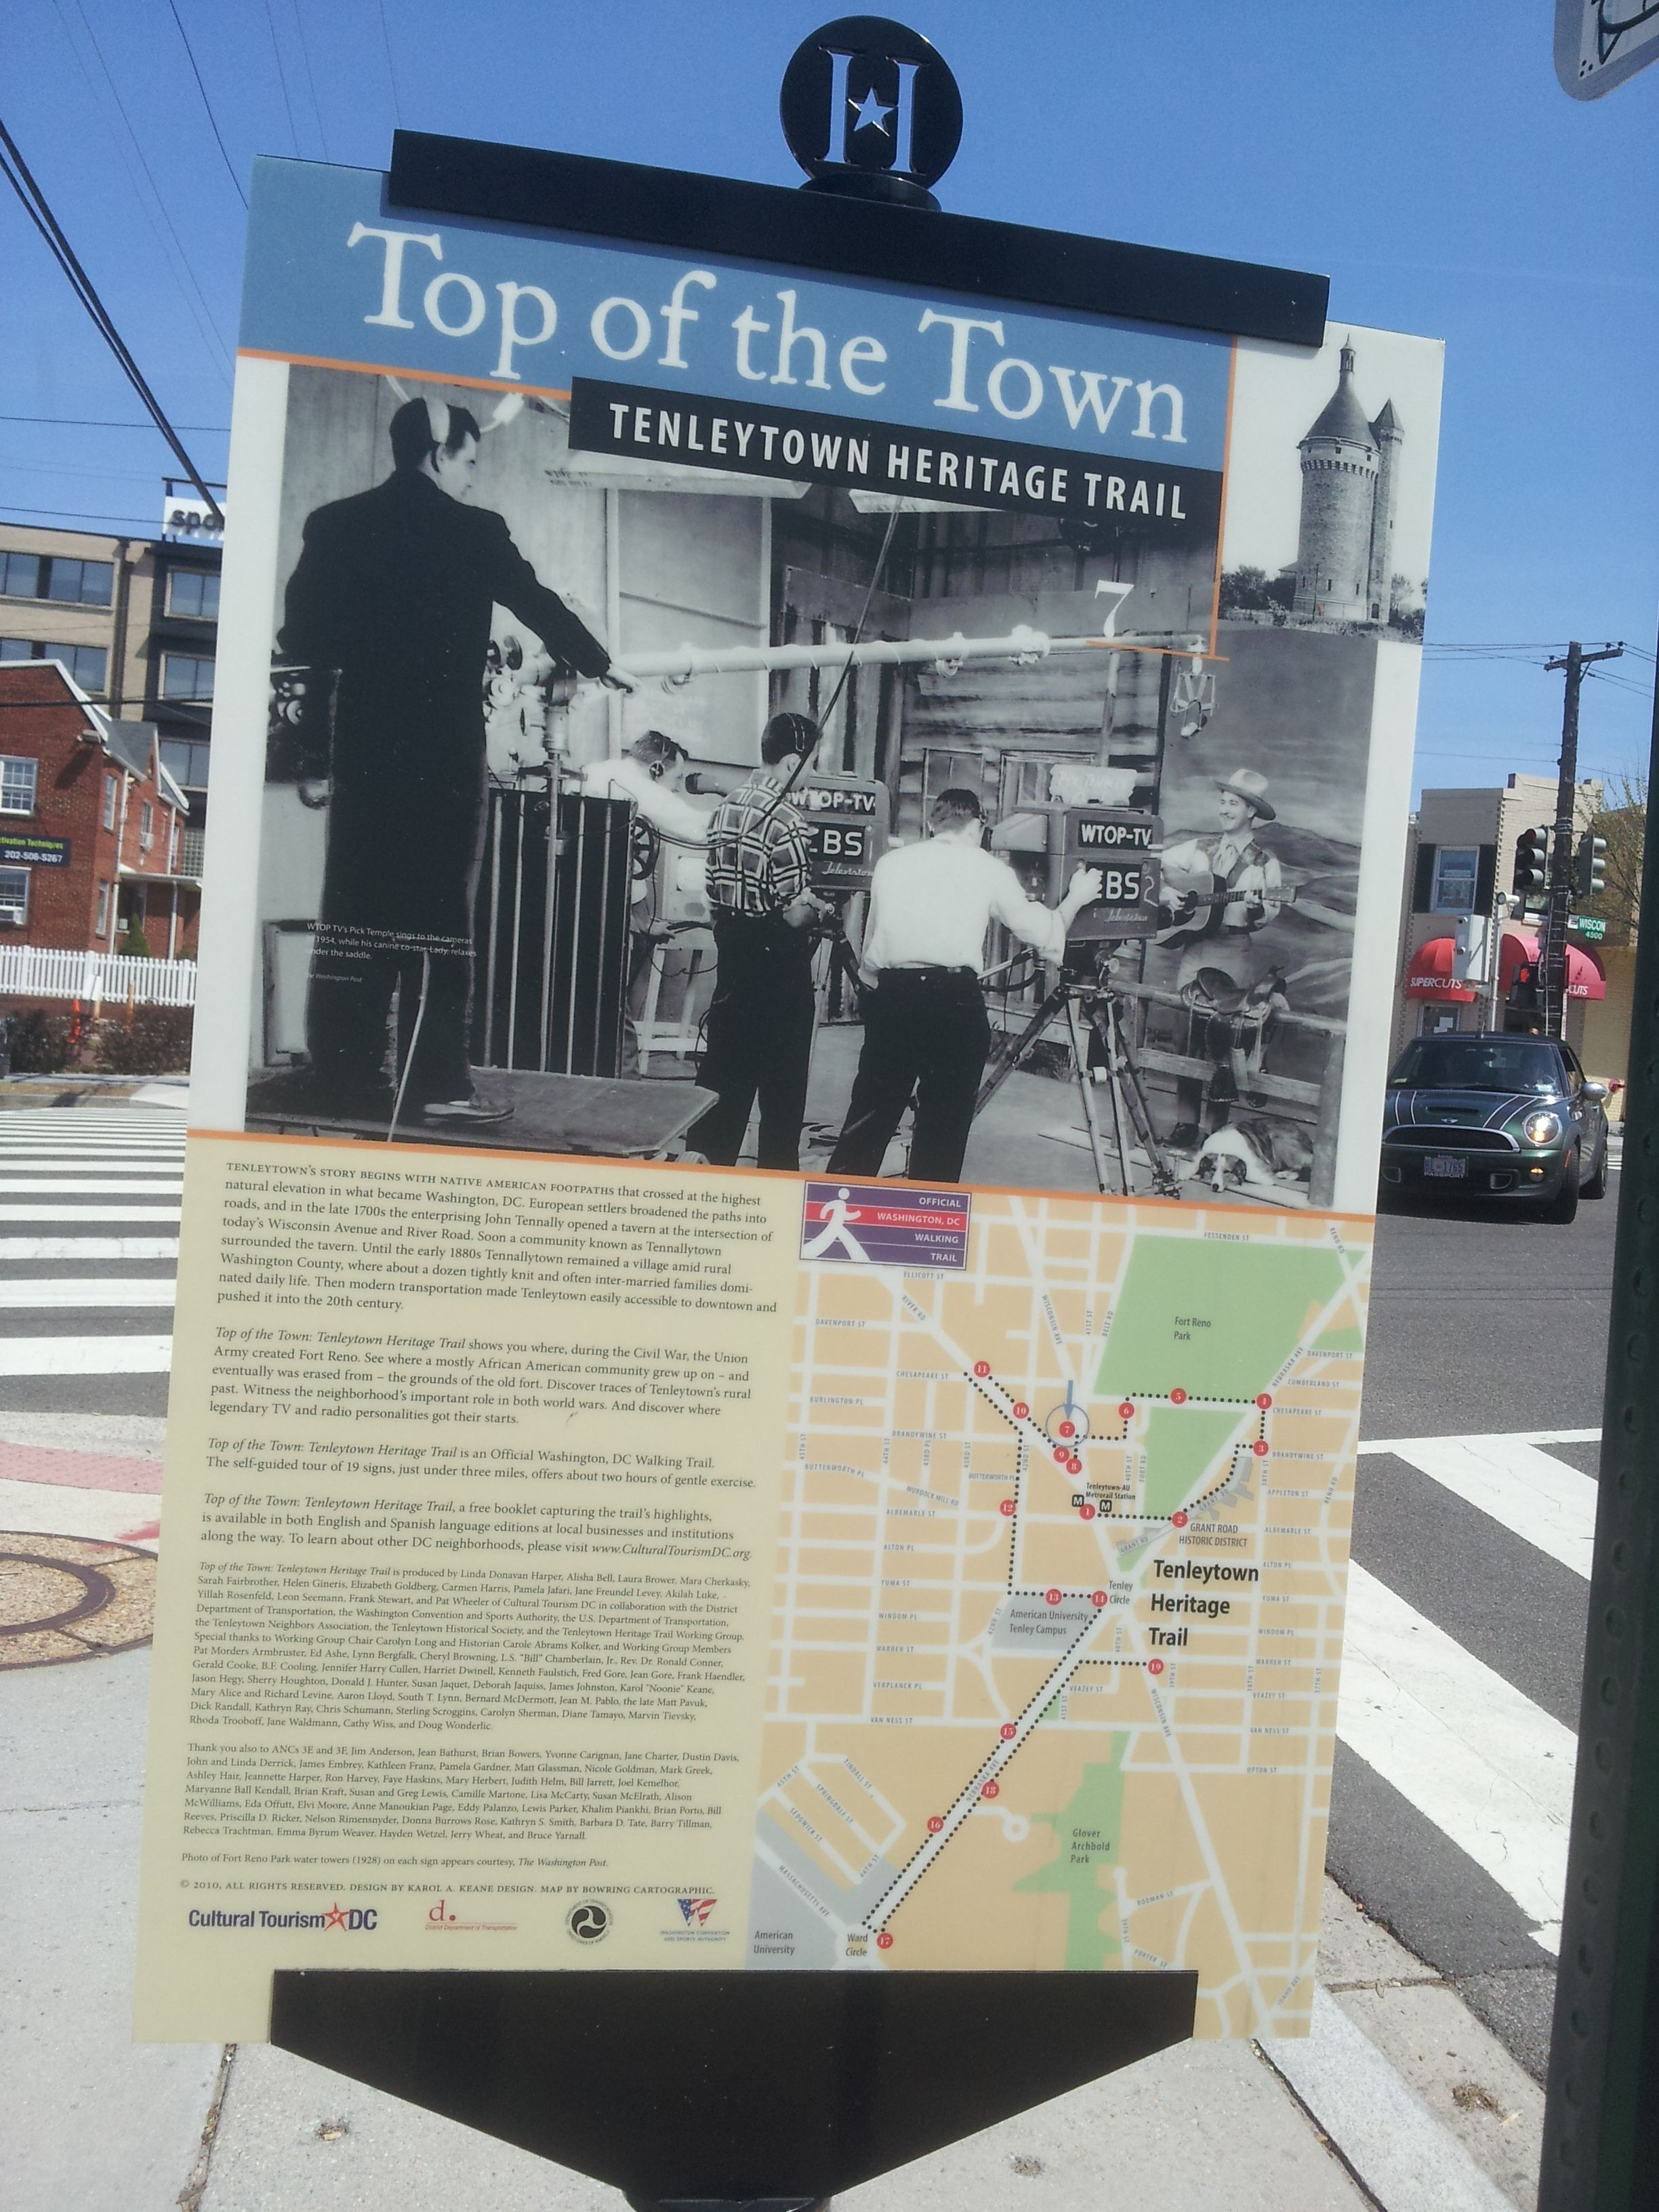 top of the town tenleytown heritage trail brief history of the history